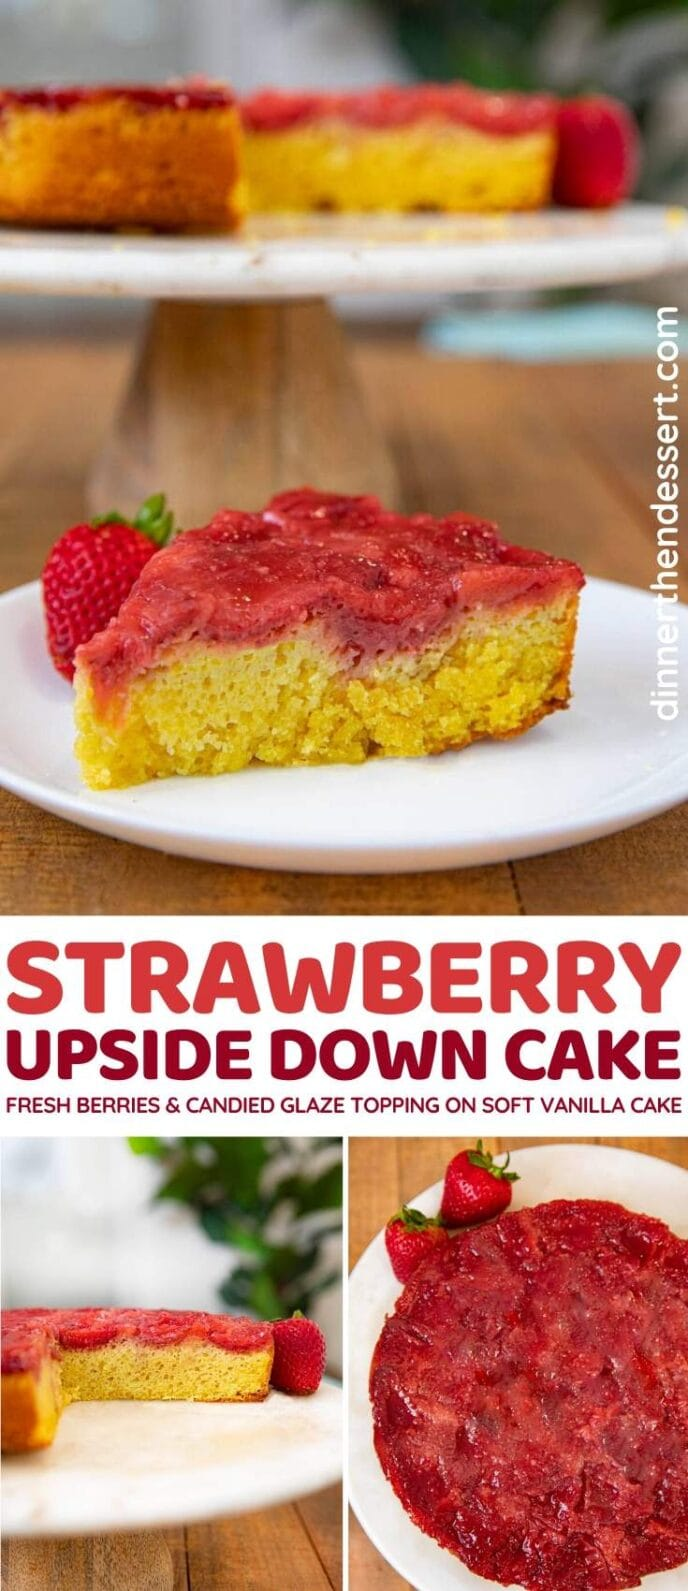 Strawberry Upside Down Cake collage